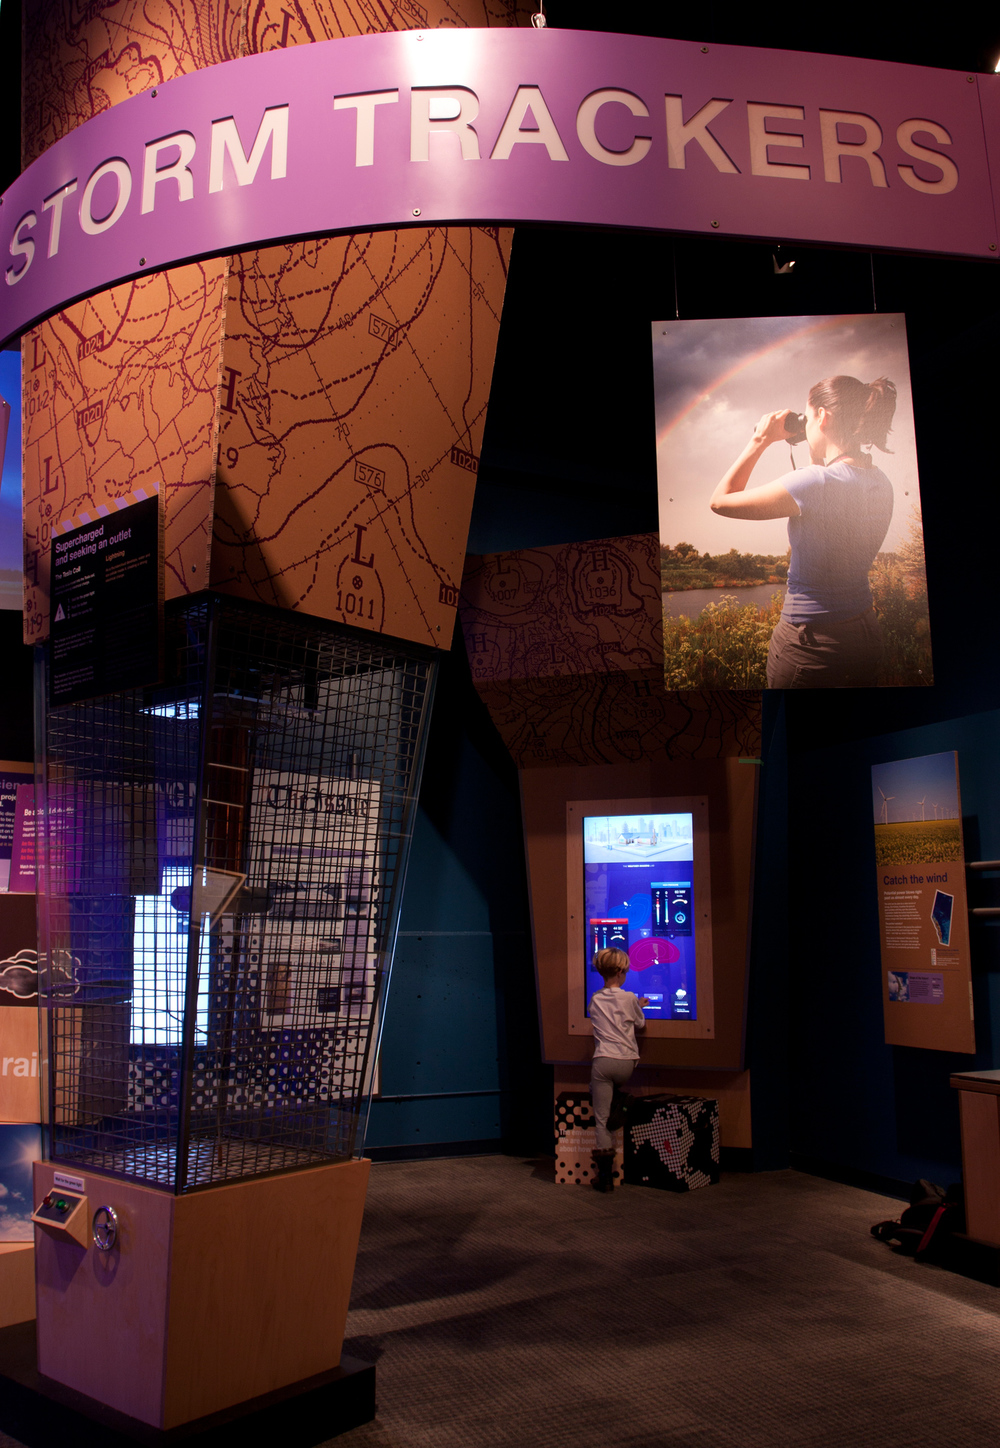 The  Storm Trackers  exhibit. Photo by TELUS World of Science.